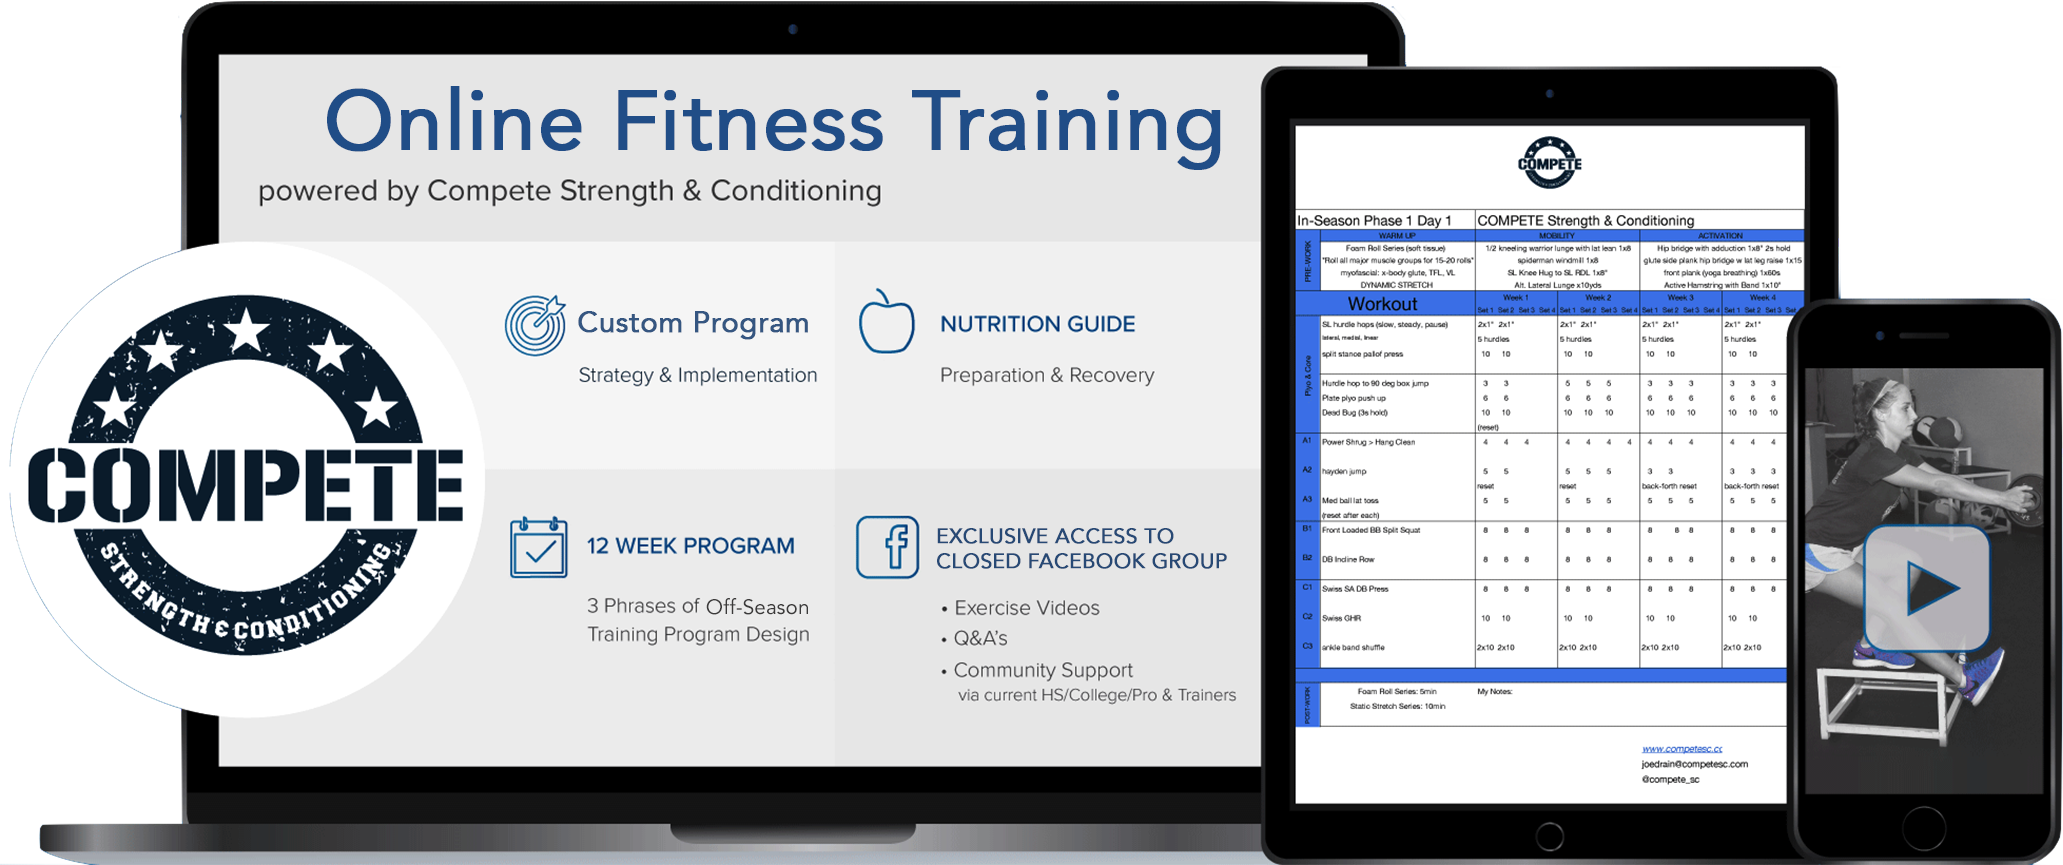 Online Training | Compete Strength & Conditioning